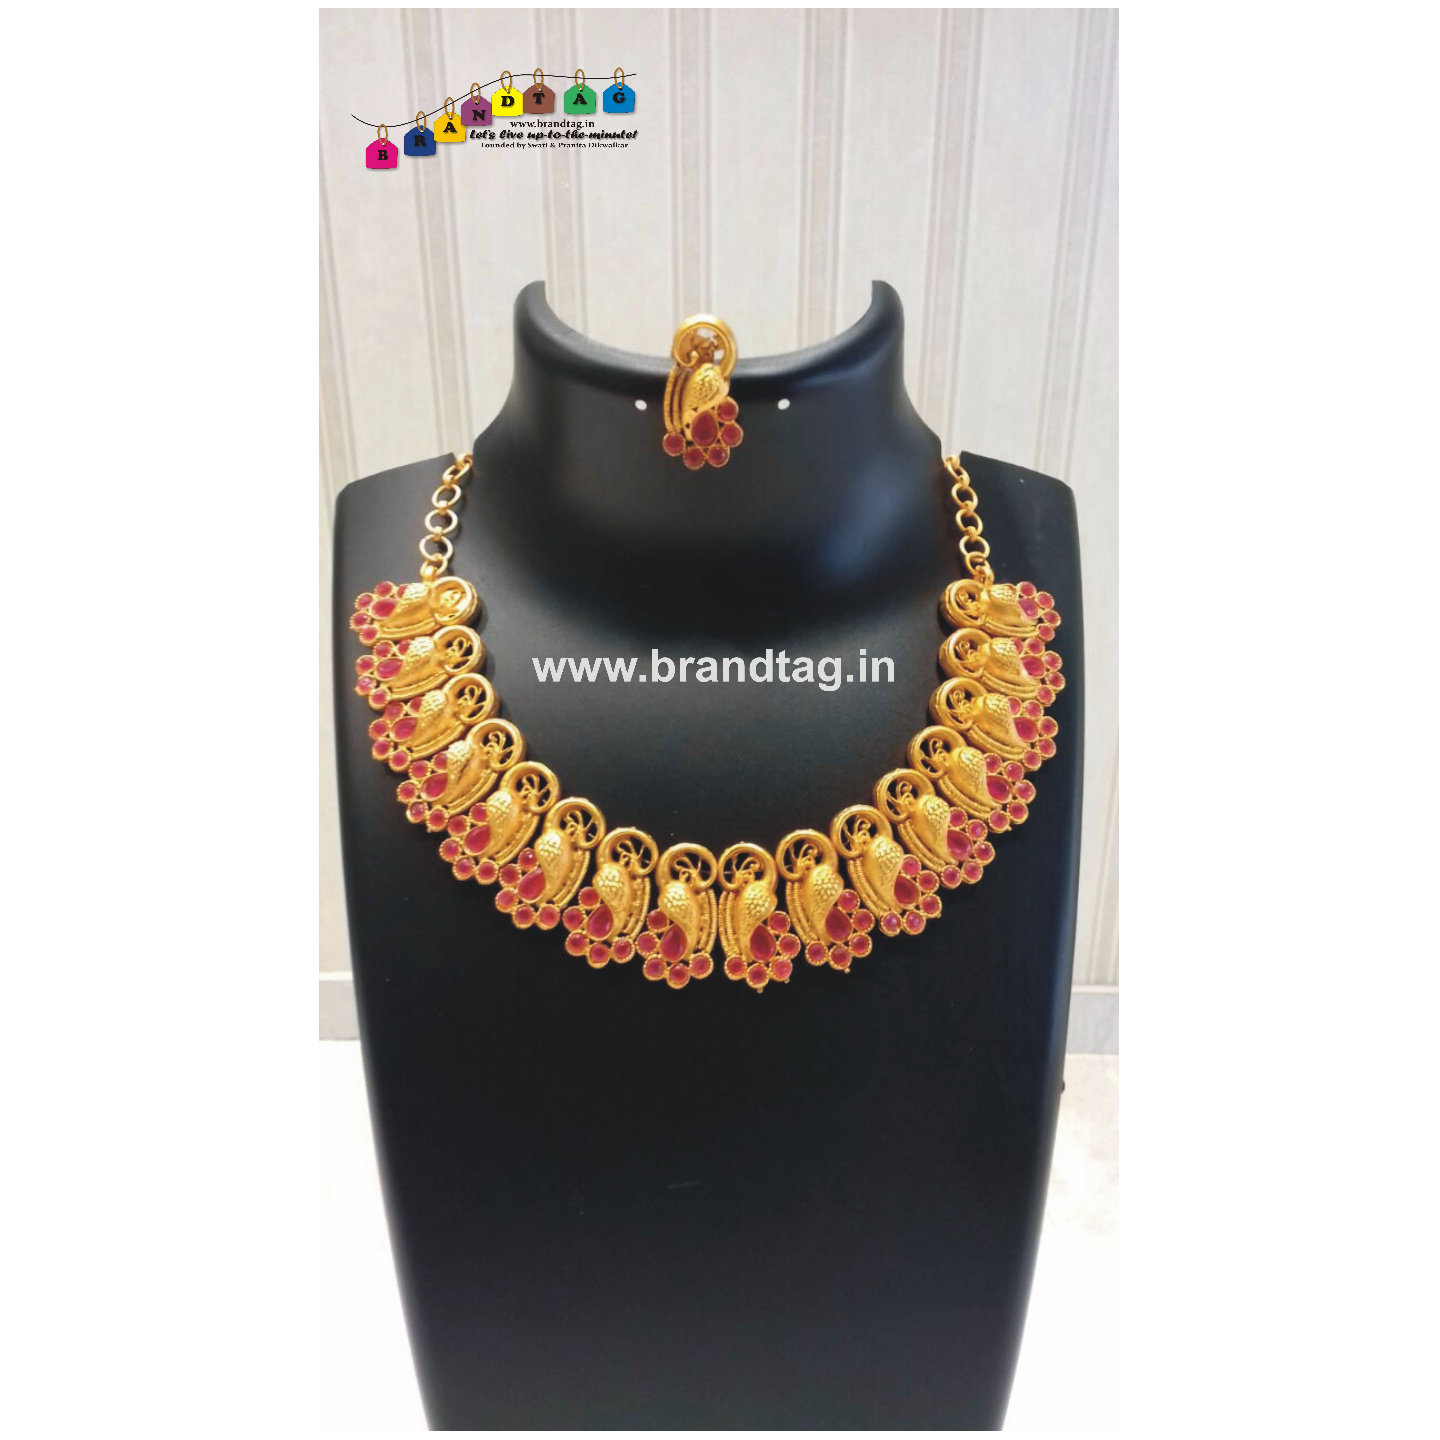 Diwali Collection - Striking Golden Necklace!